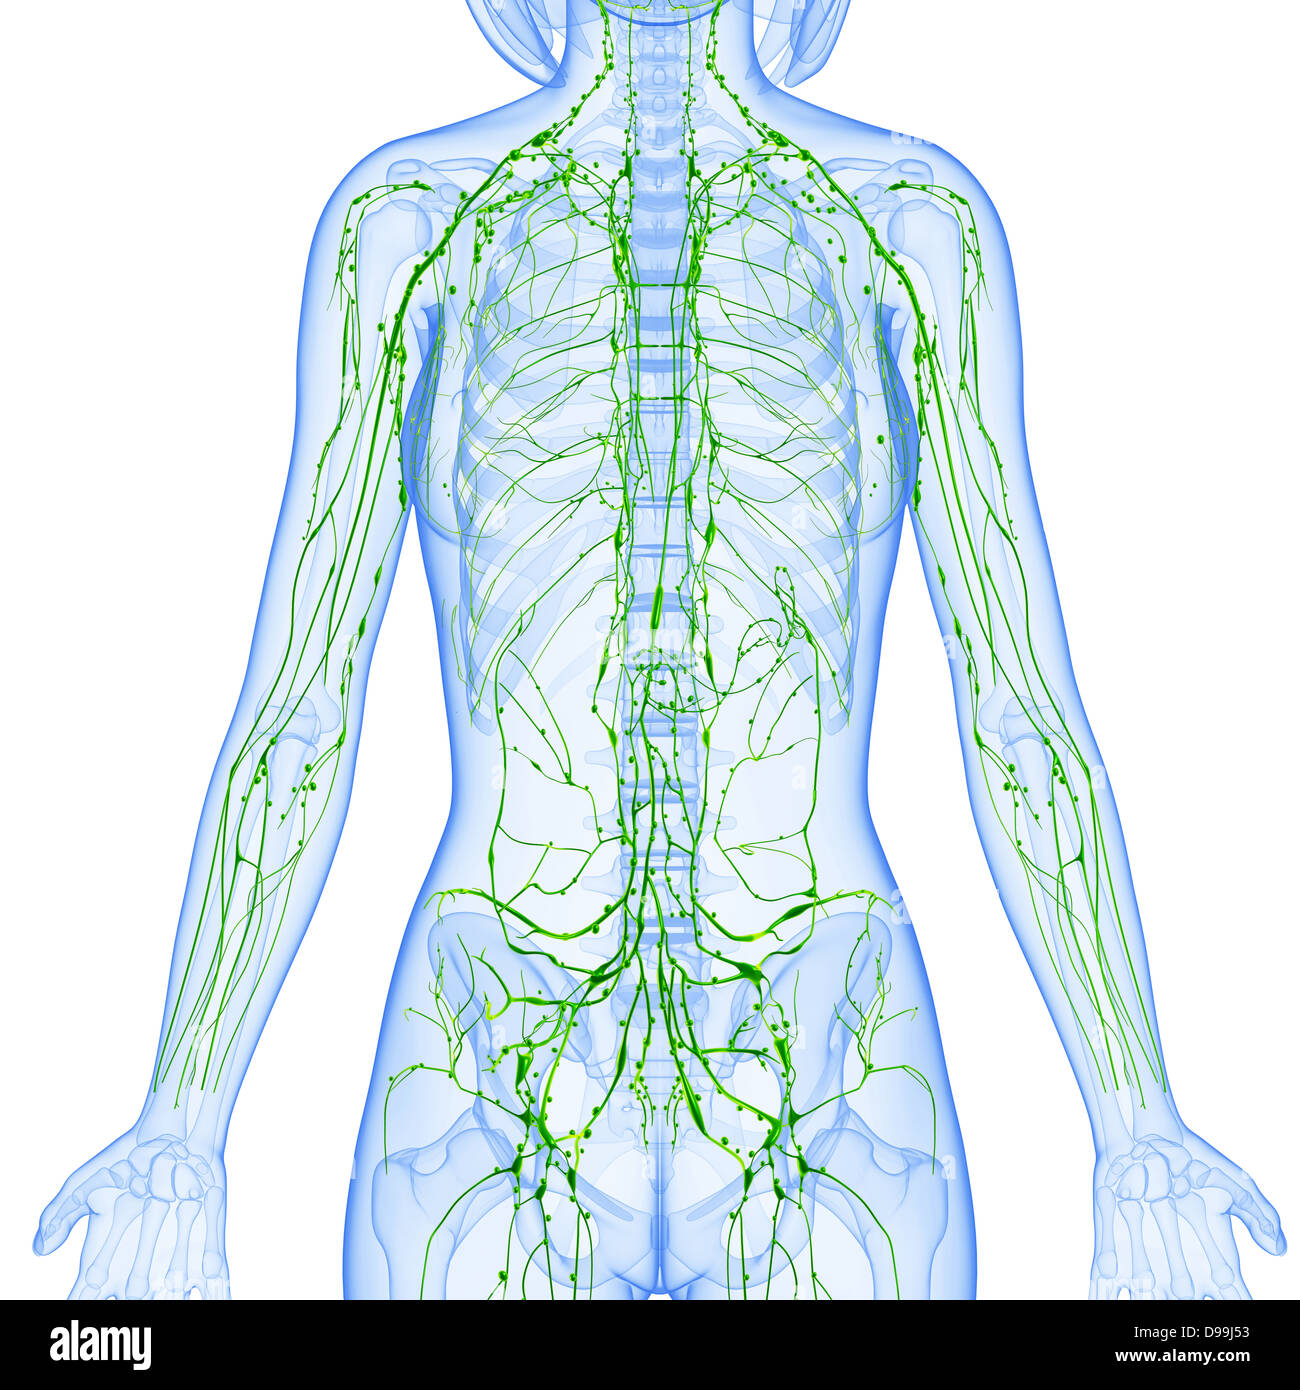 lymphatic system of female body anatomy in x-ray form Stock Photo ...